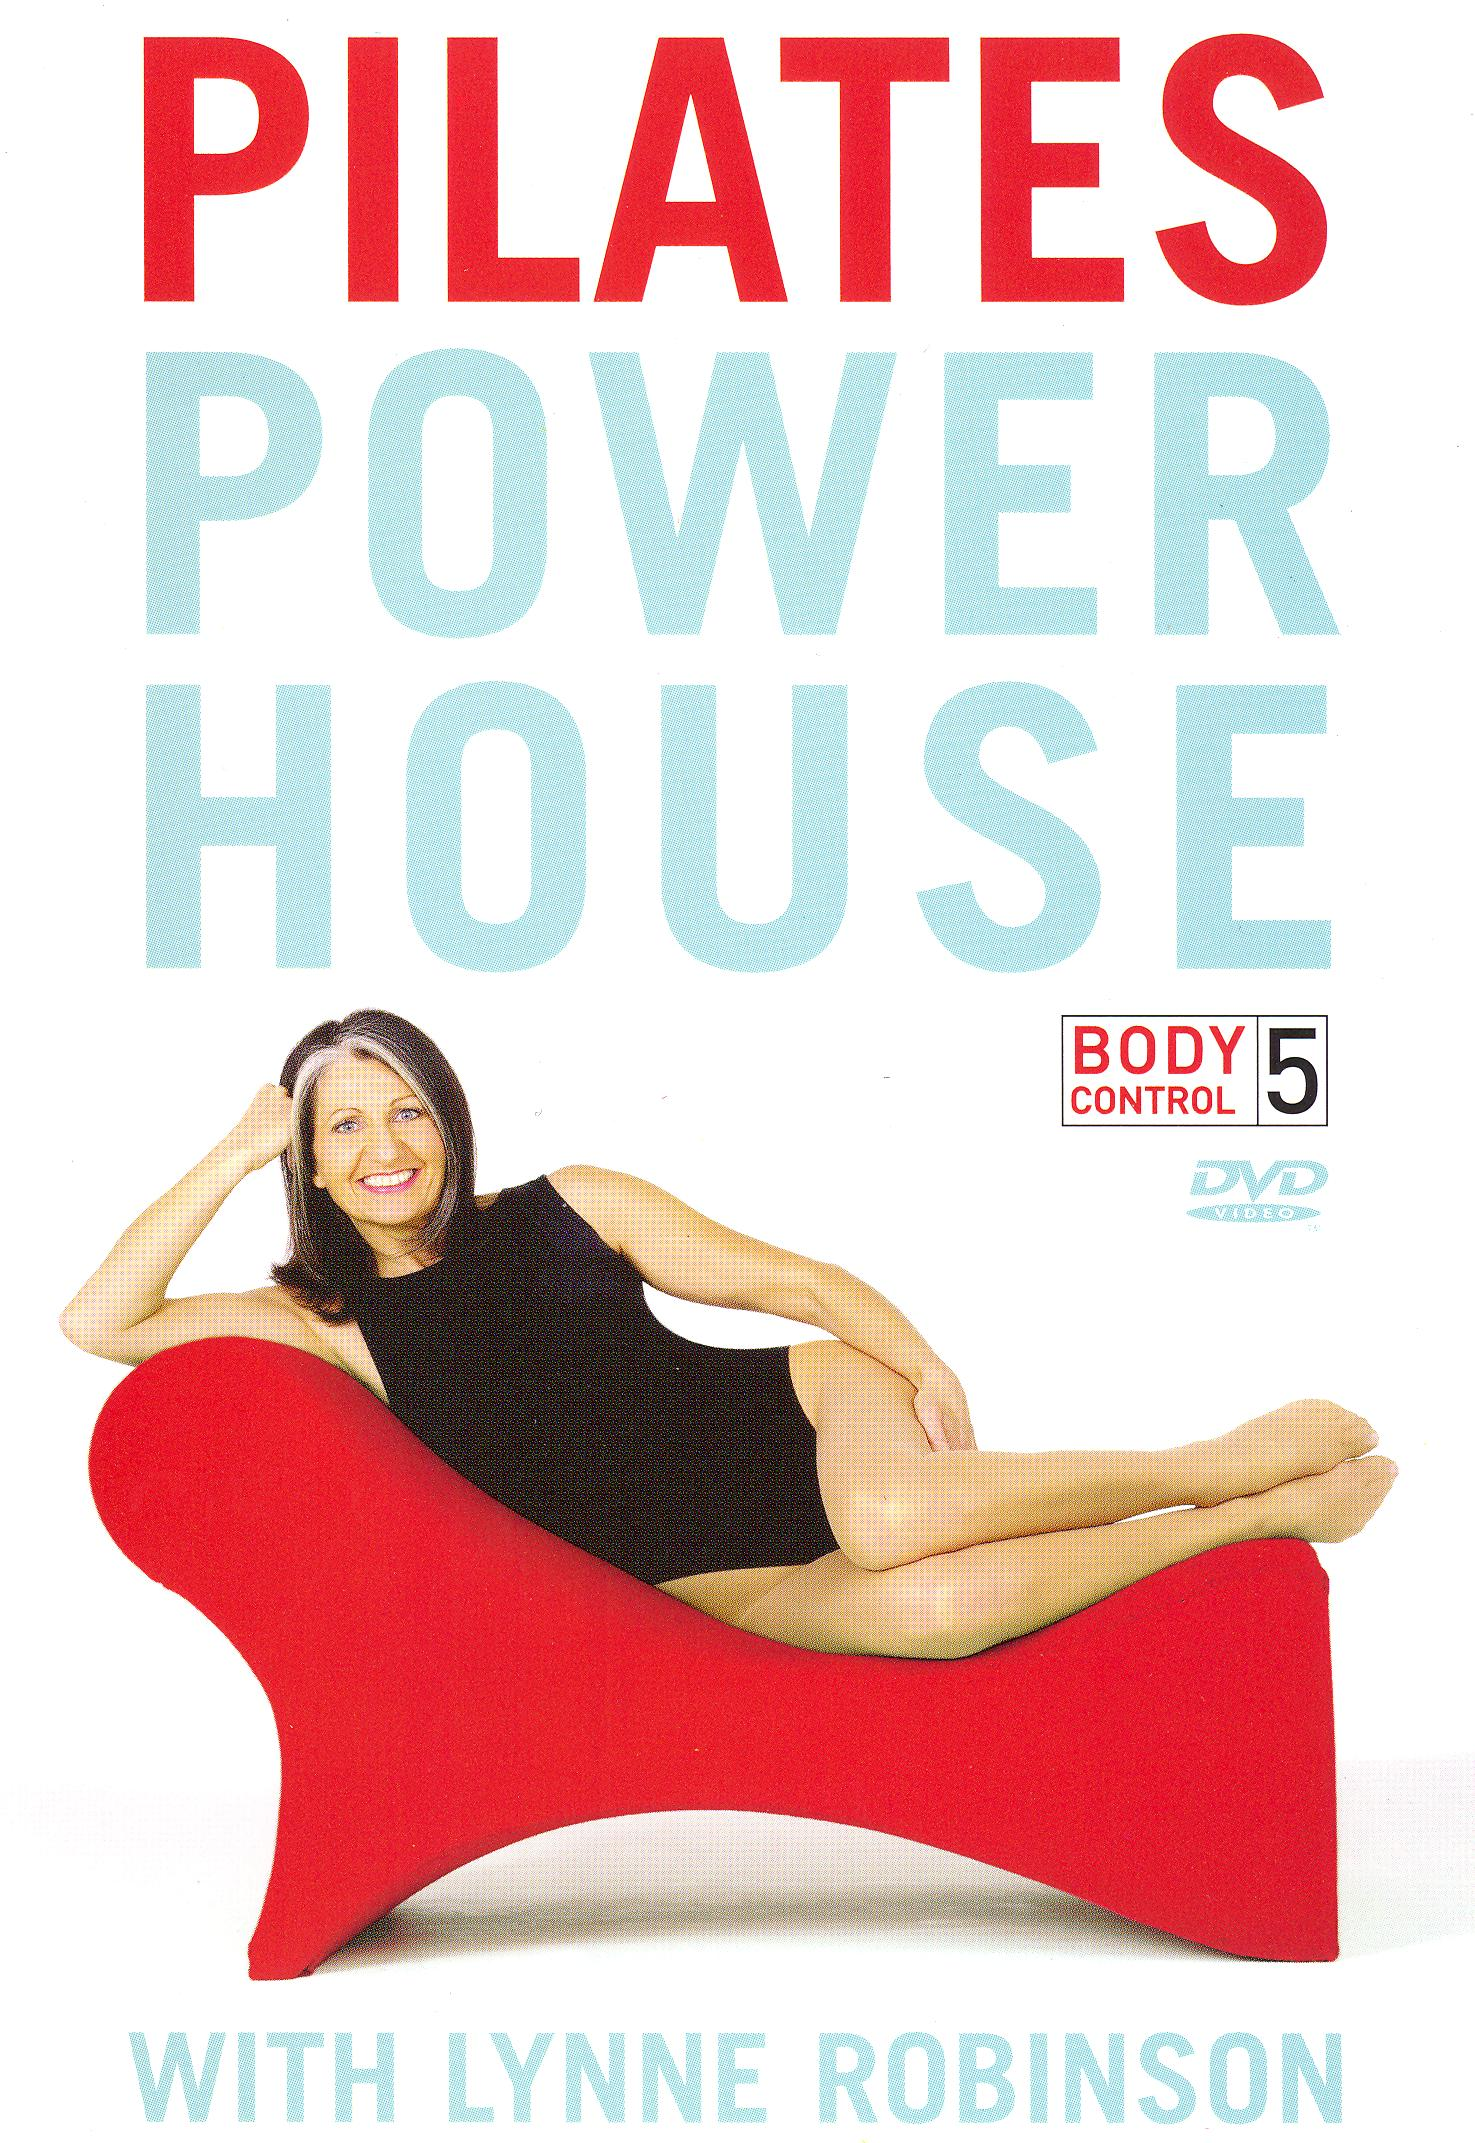 Lynne Robinson: Body Control 5 - Pilates Powerhouse